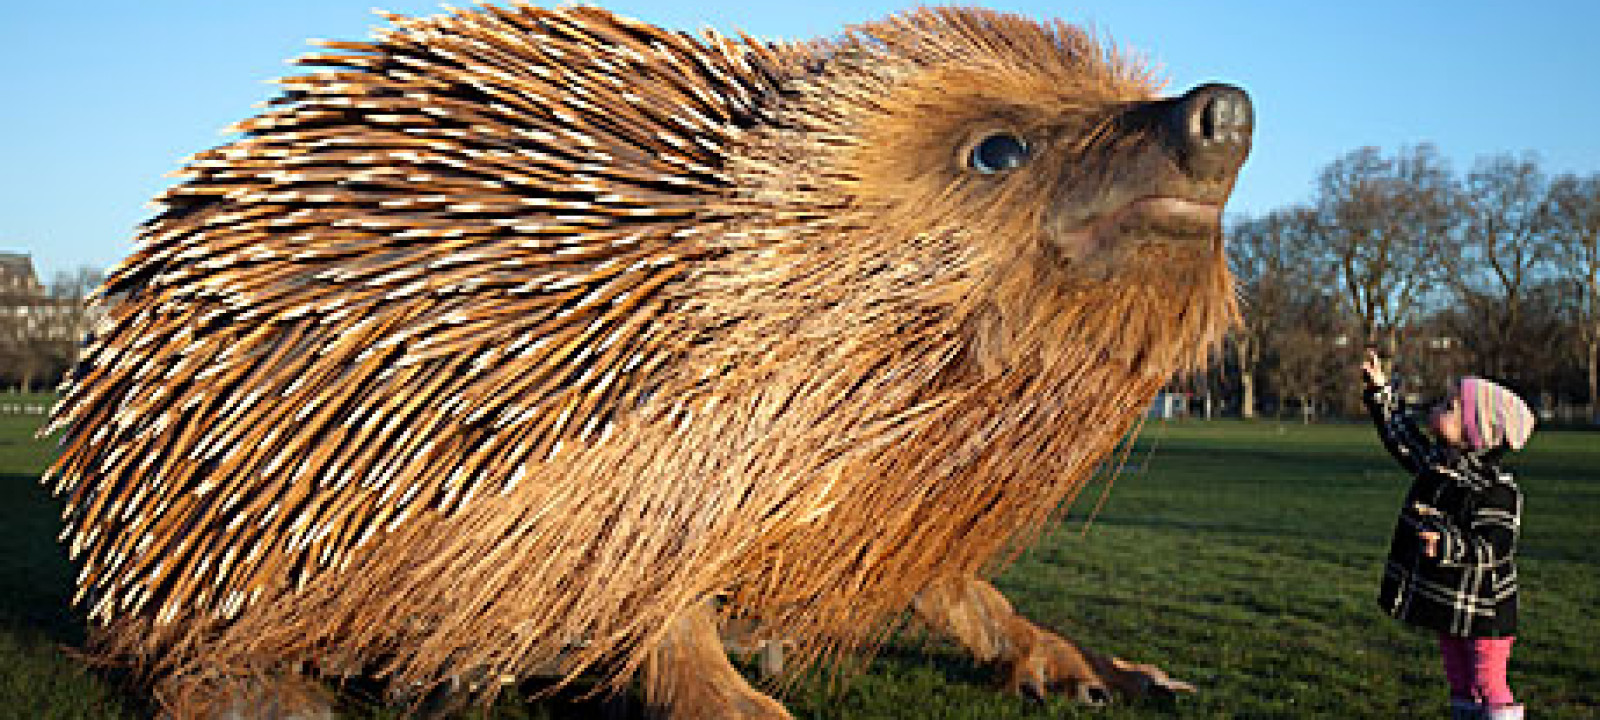 Giant hedgehog